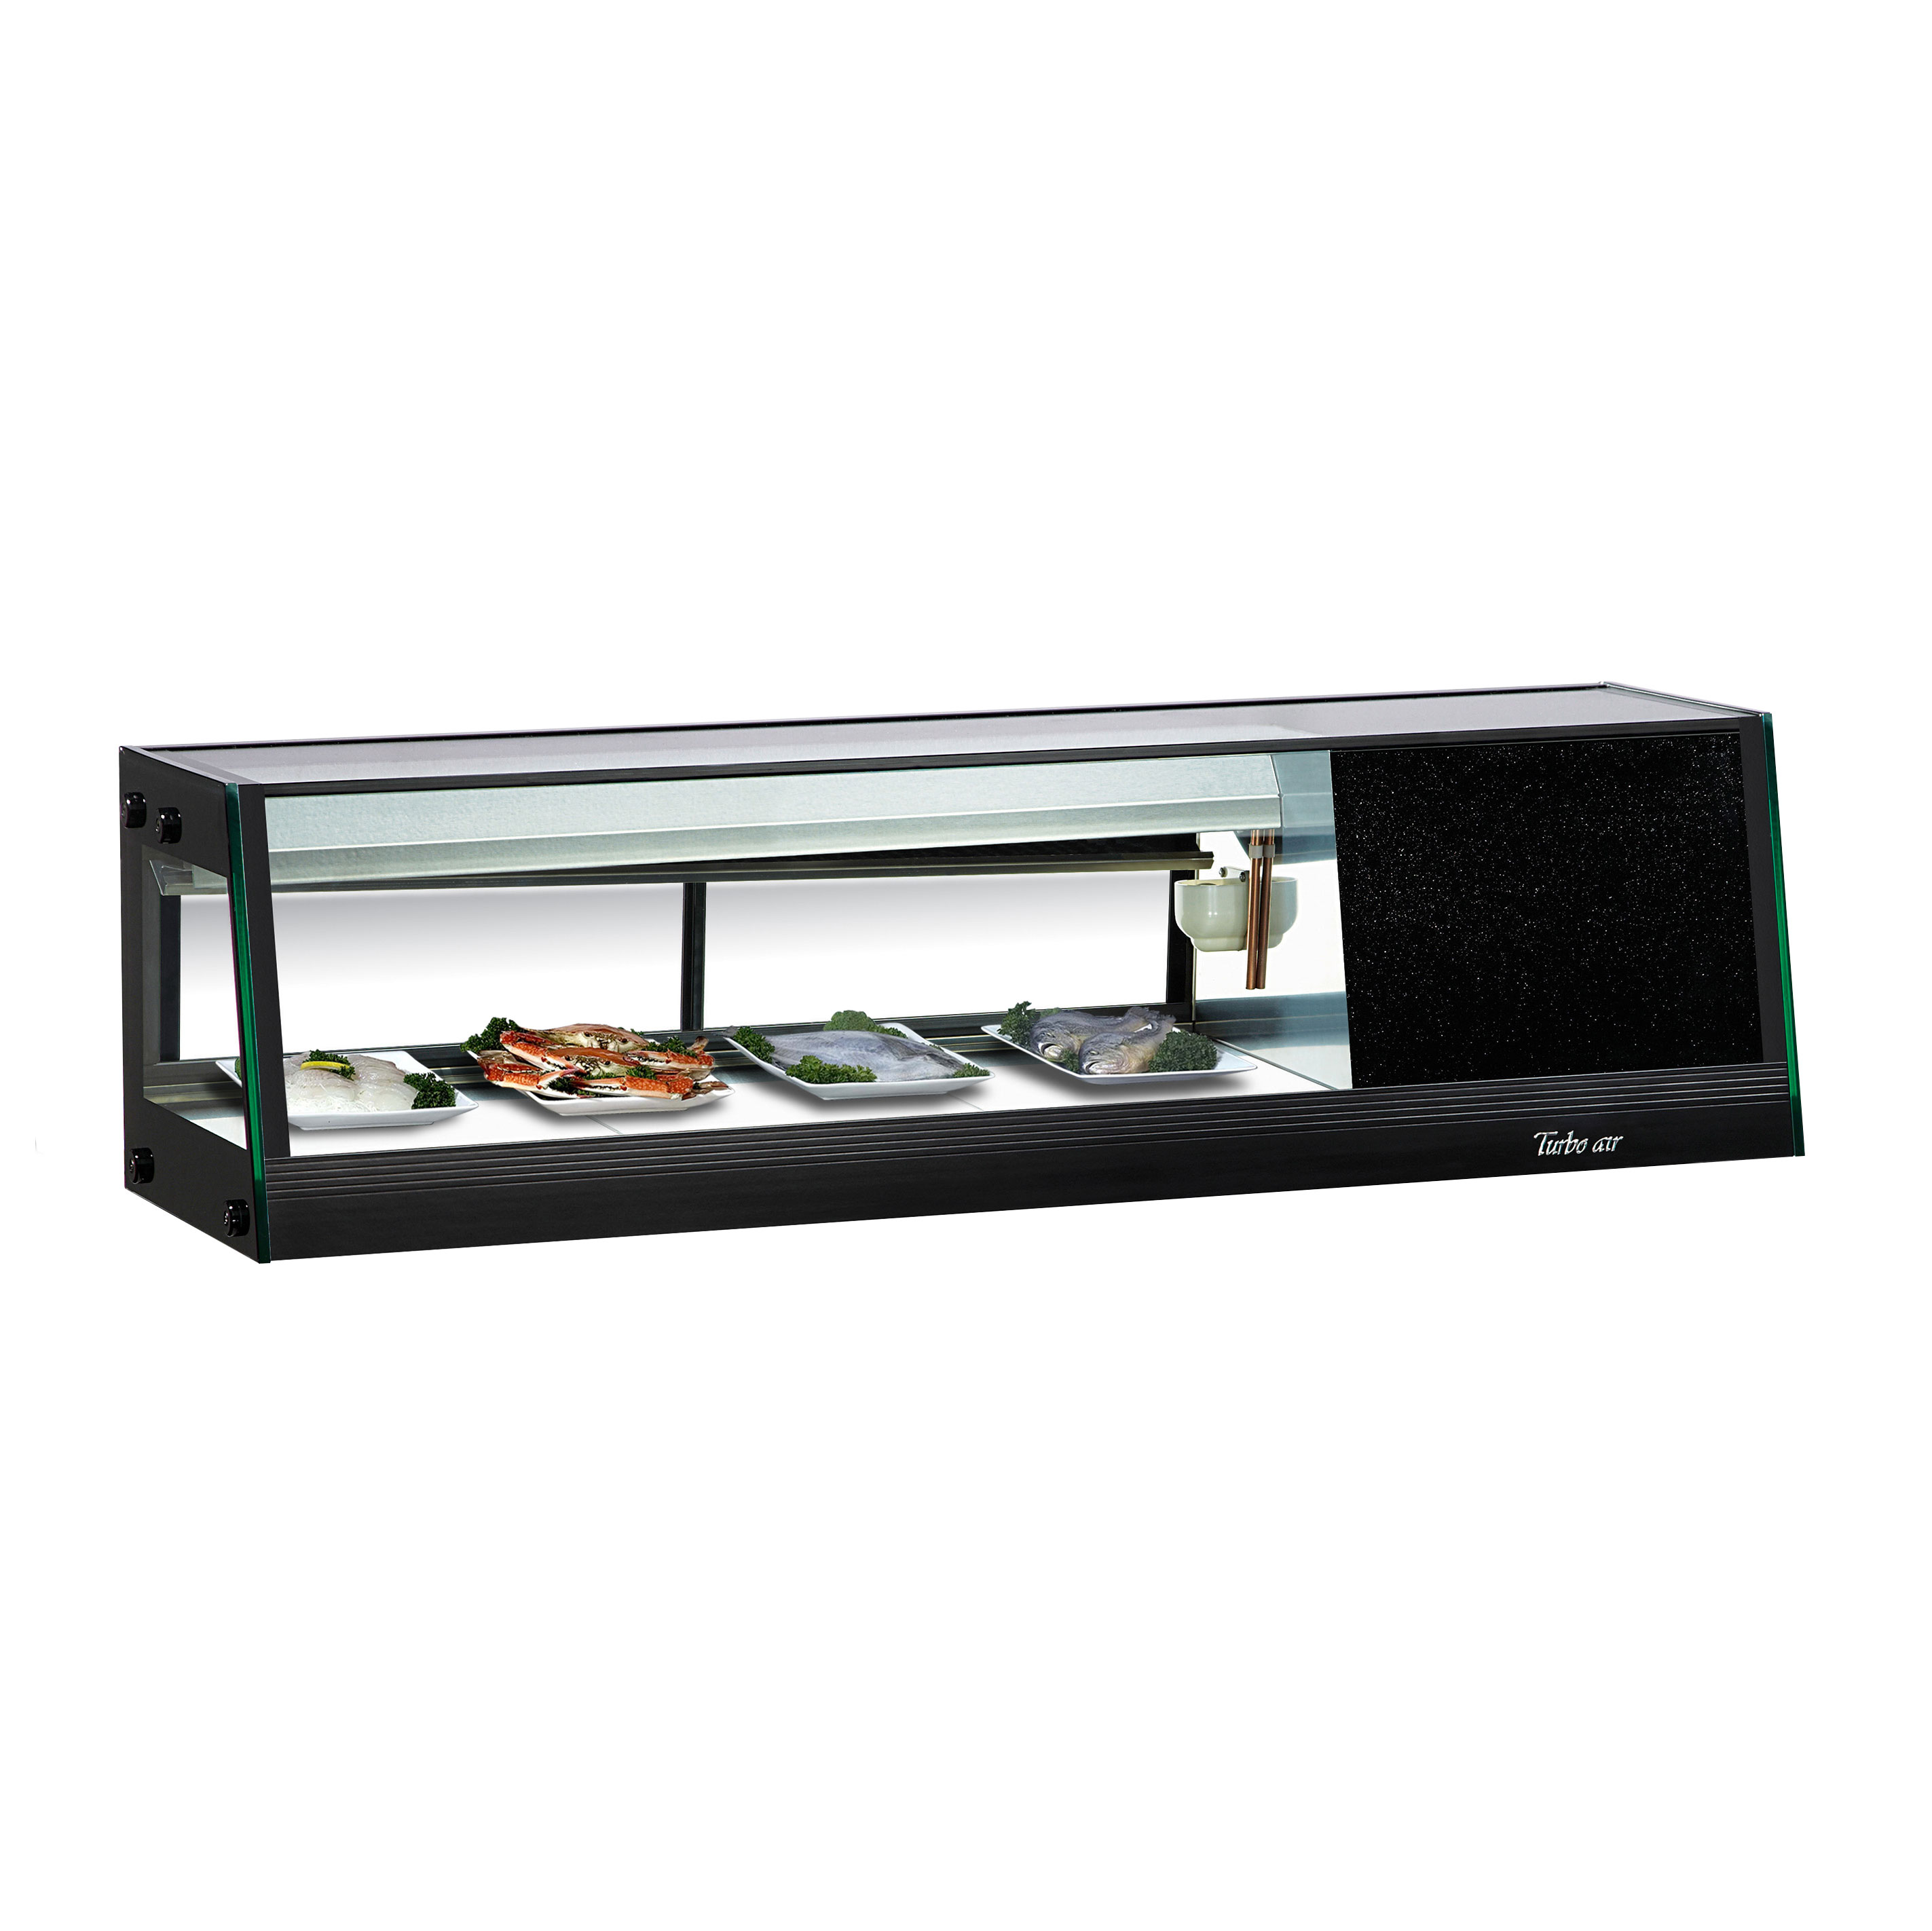 Turbo Air SAS-50R(L)-N display case, refrigerated sushi